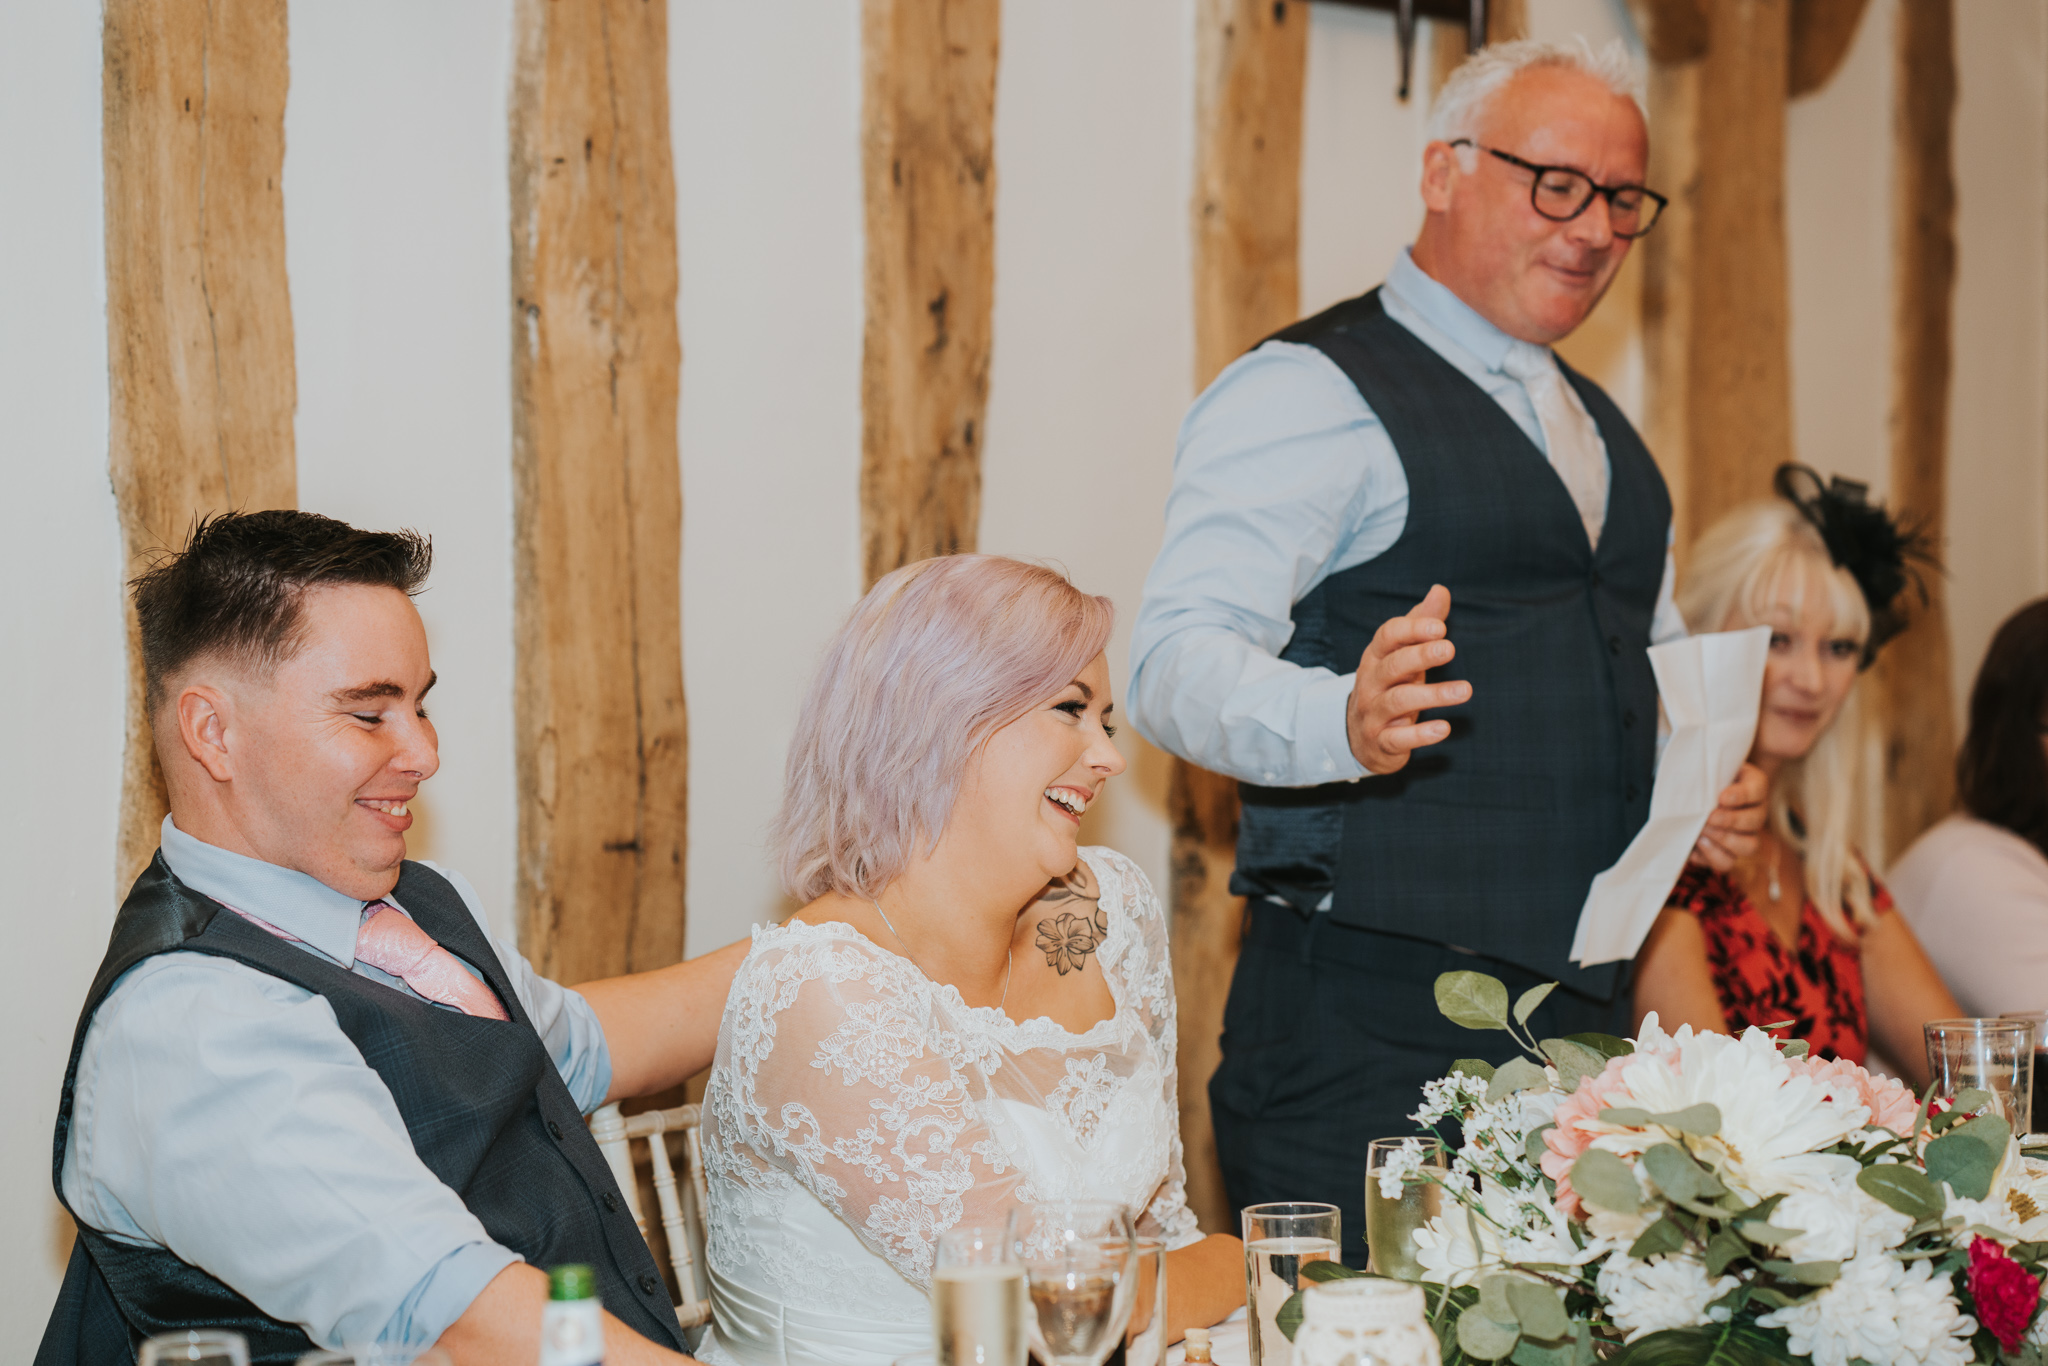 rhia-james-rustic-crabbs-barn-vintage-50s-retro-wedding-grace-elizabeth-colchester-essex-alternative-relaxed-wedding-family-photography-devon-suffolk-norfolk-essex (117 of 138).jpg